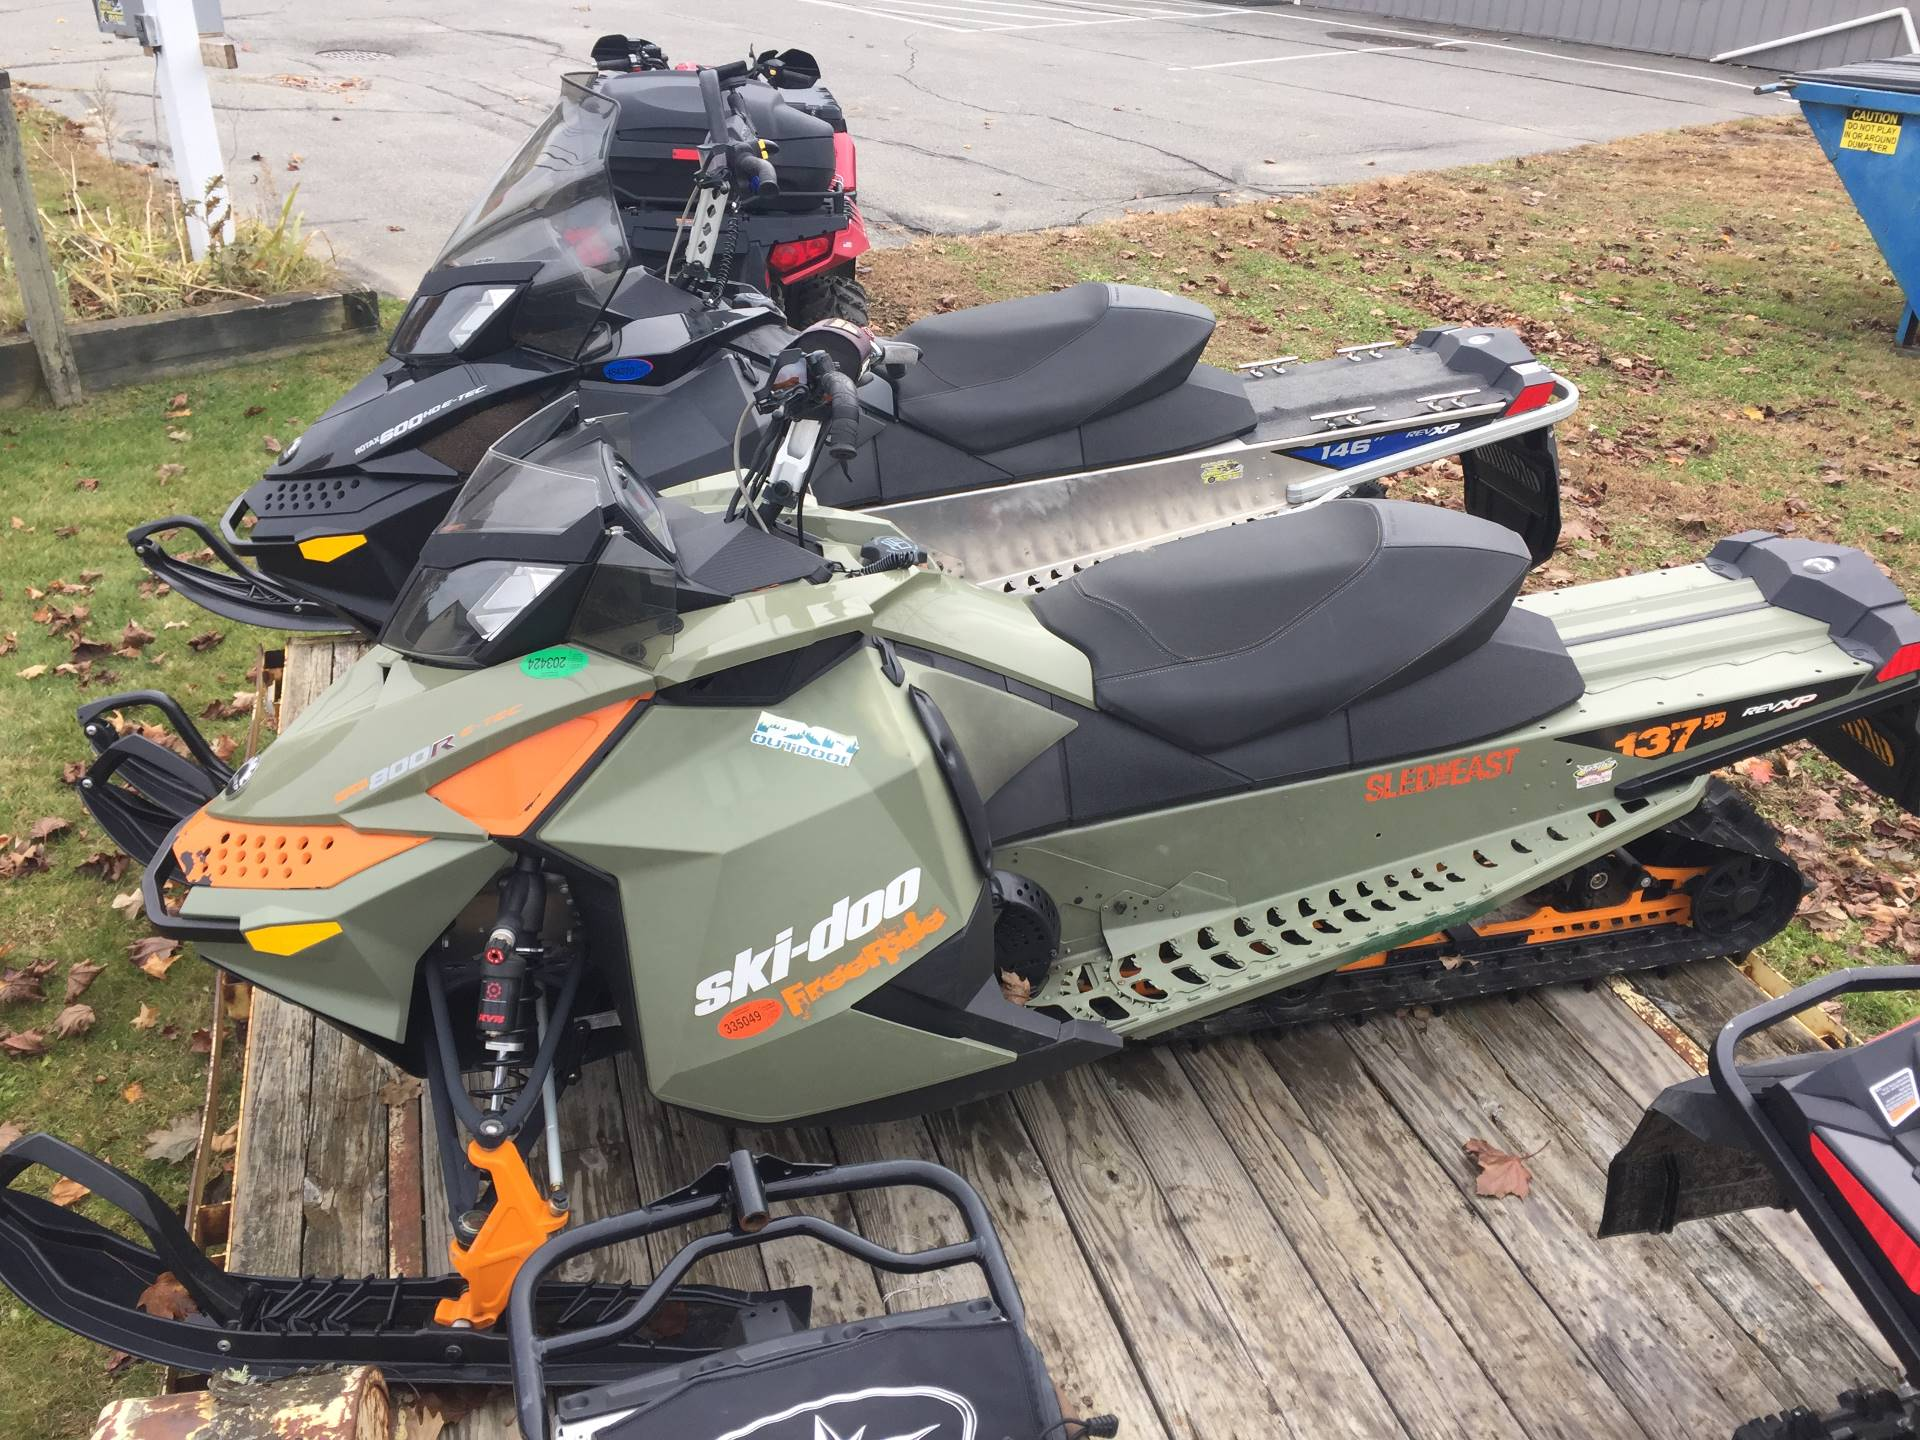 2013 Ski-Doo Freeride™ 137 E.S. in Unity, Maine